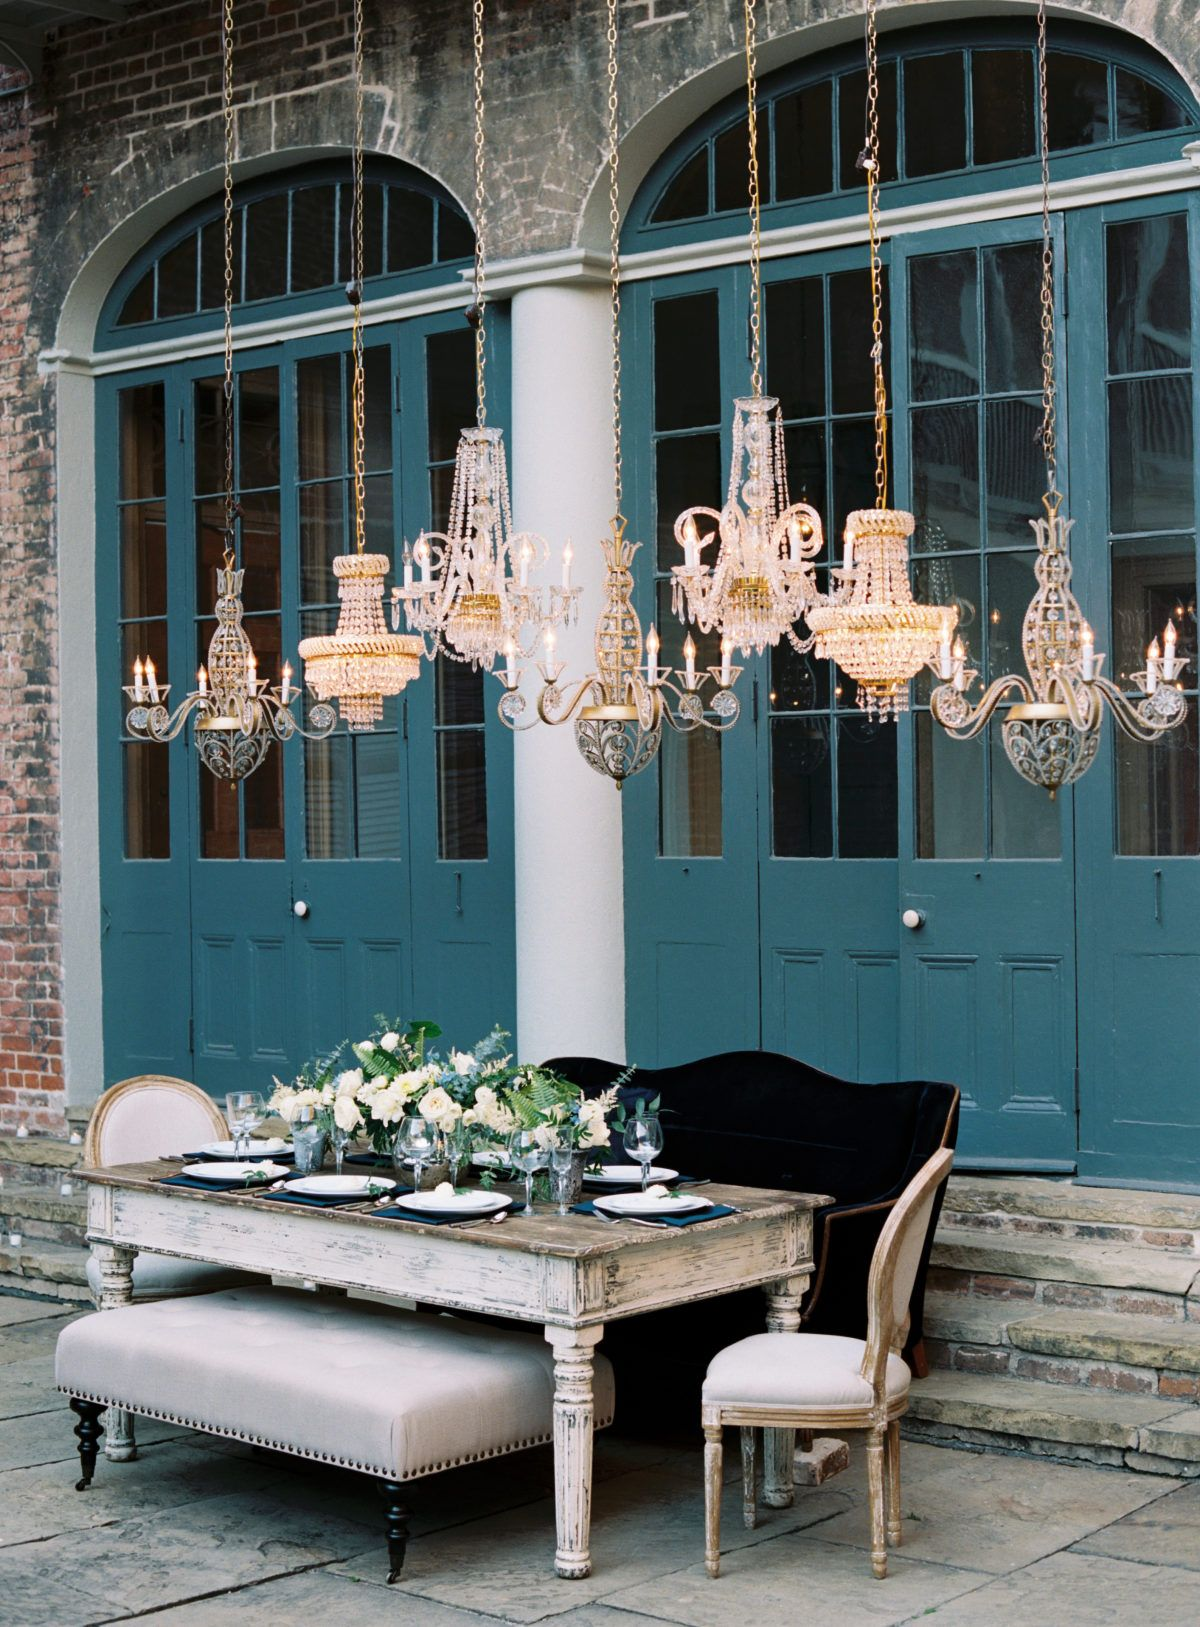 Dreamy Blue French Quarters Inspirational Shoot in 2020 ... on French Creole Decorating Ideas  id=67404